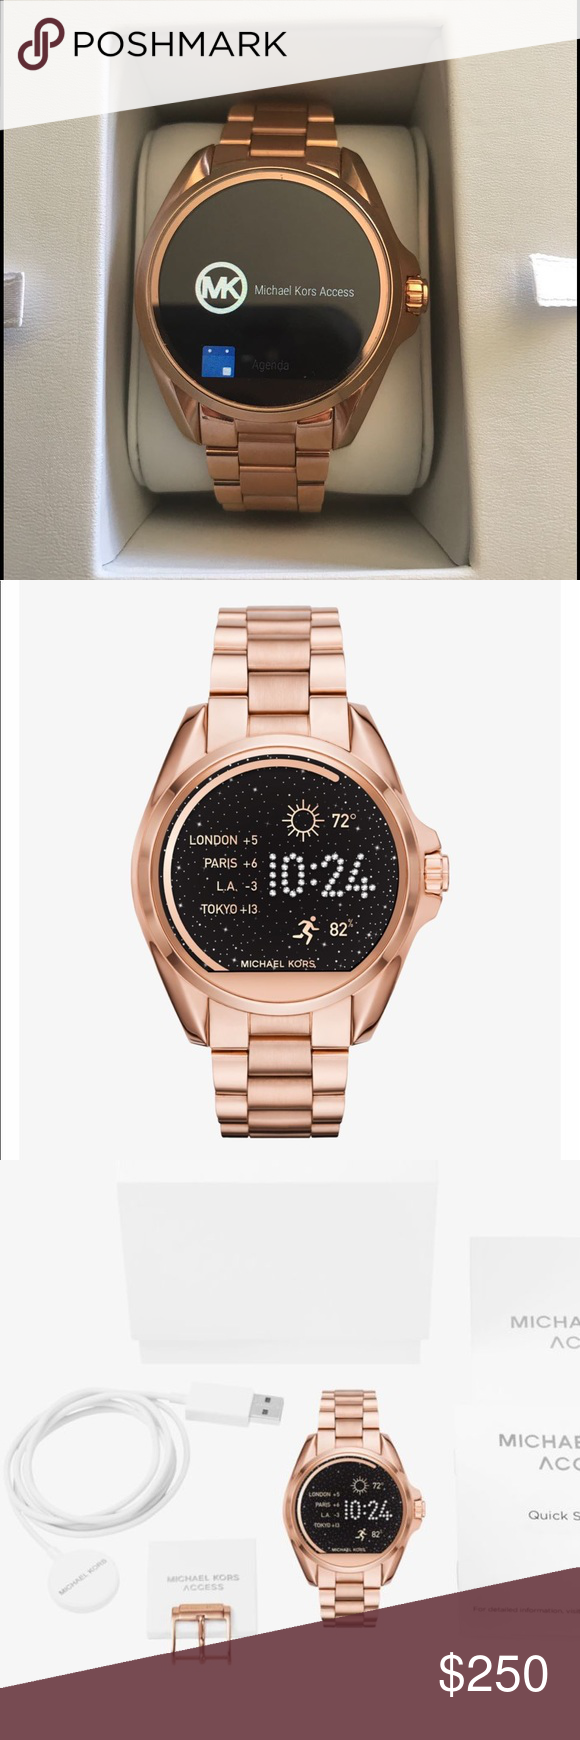 Michael Kors smartwatch The Michael Kors access Bradshaw rose-gold tone smart  watch. Worn once. Includes everything from original packaging. ddf3b6e225